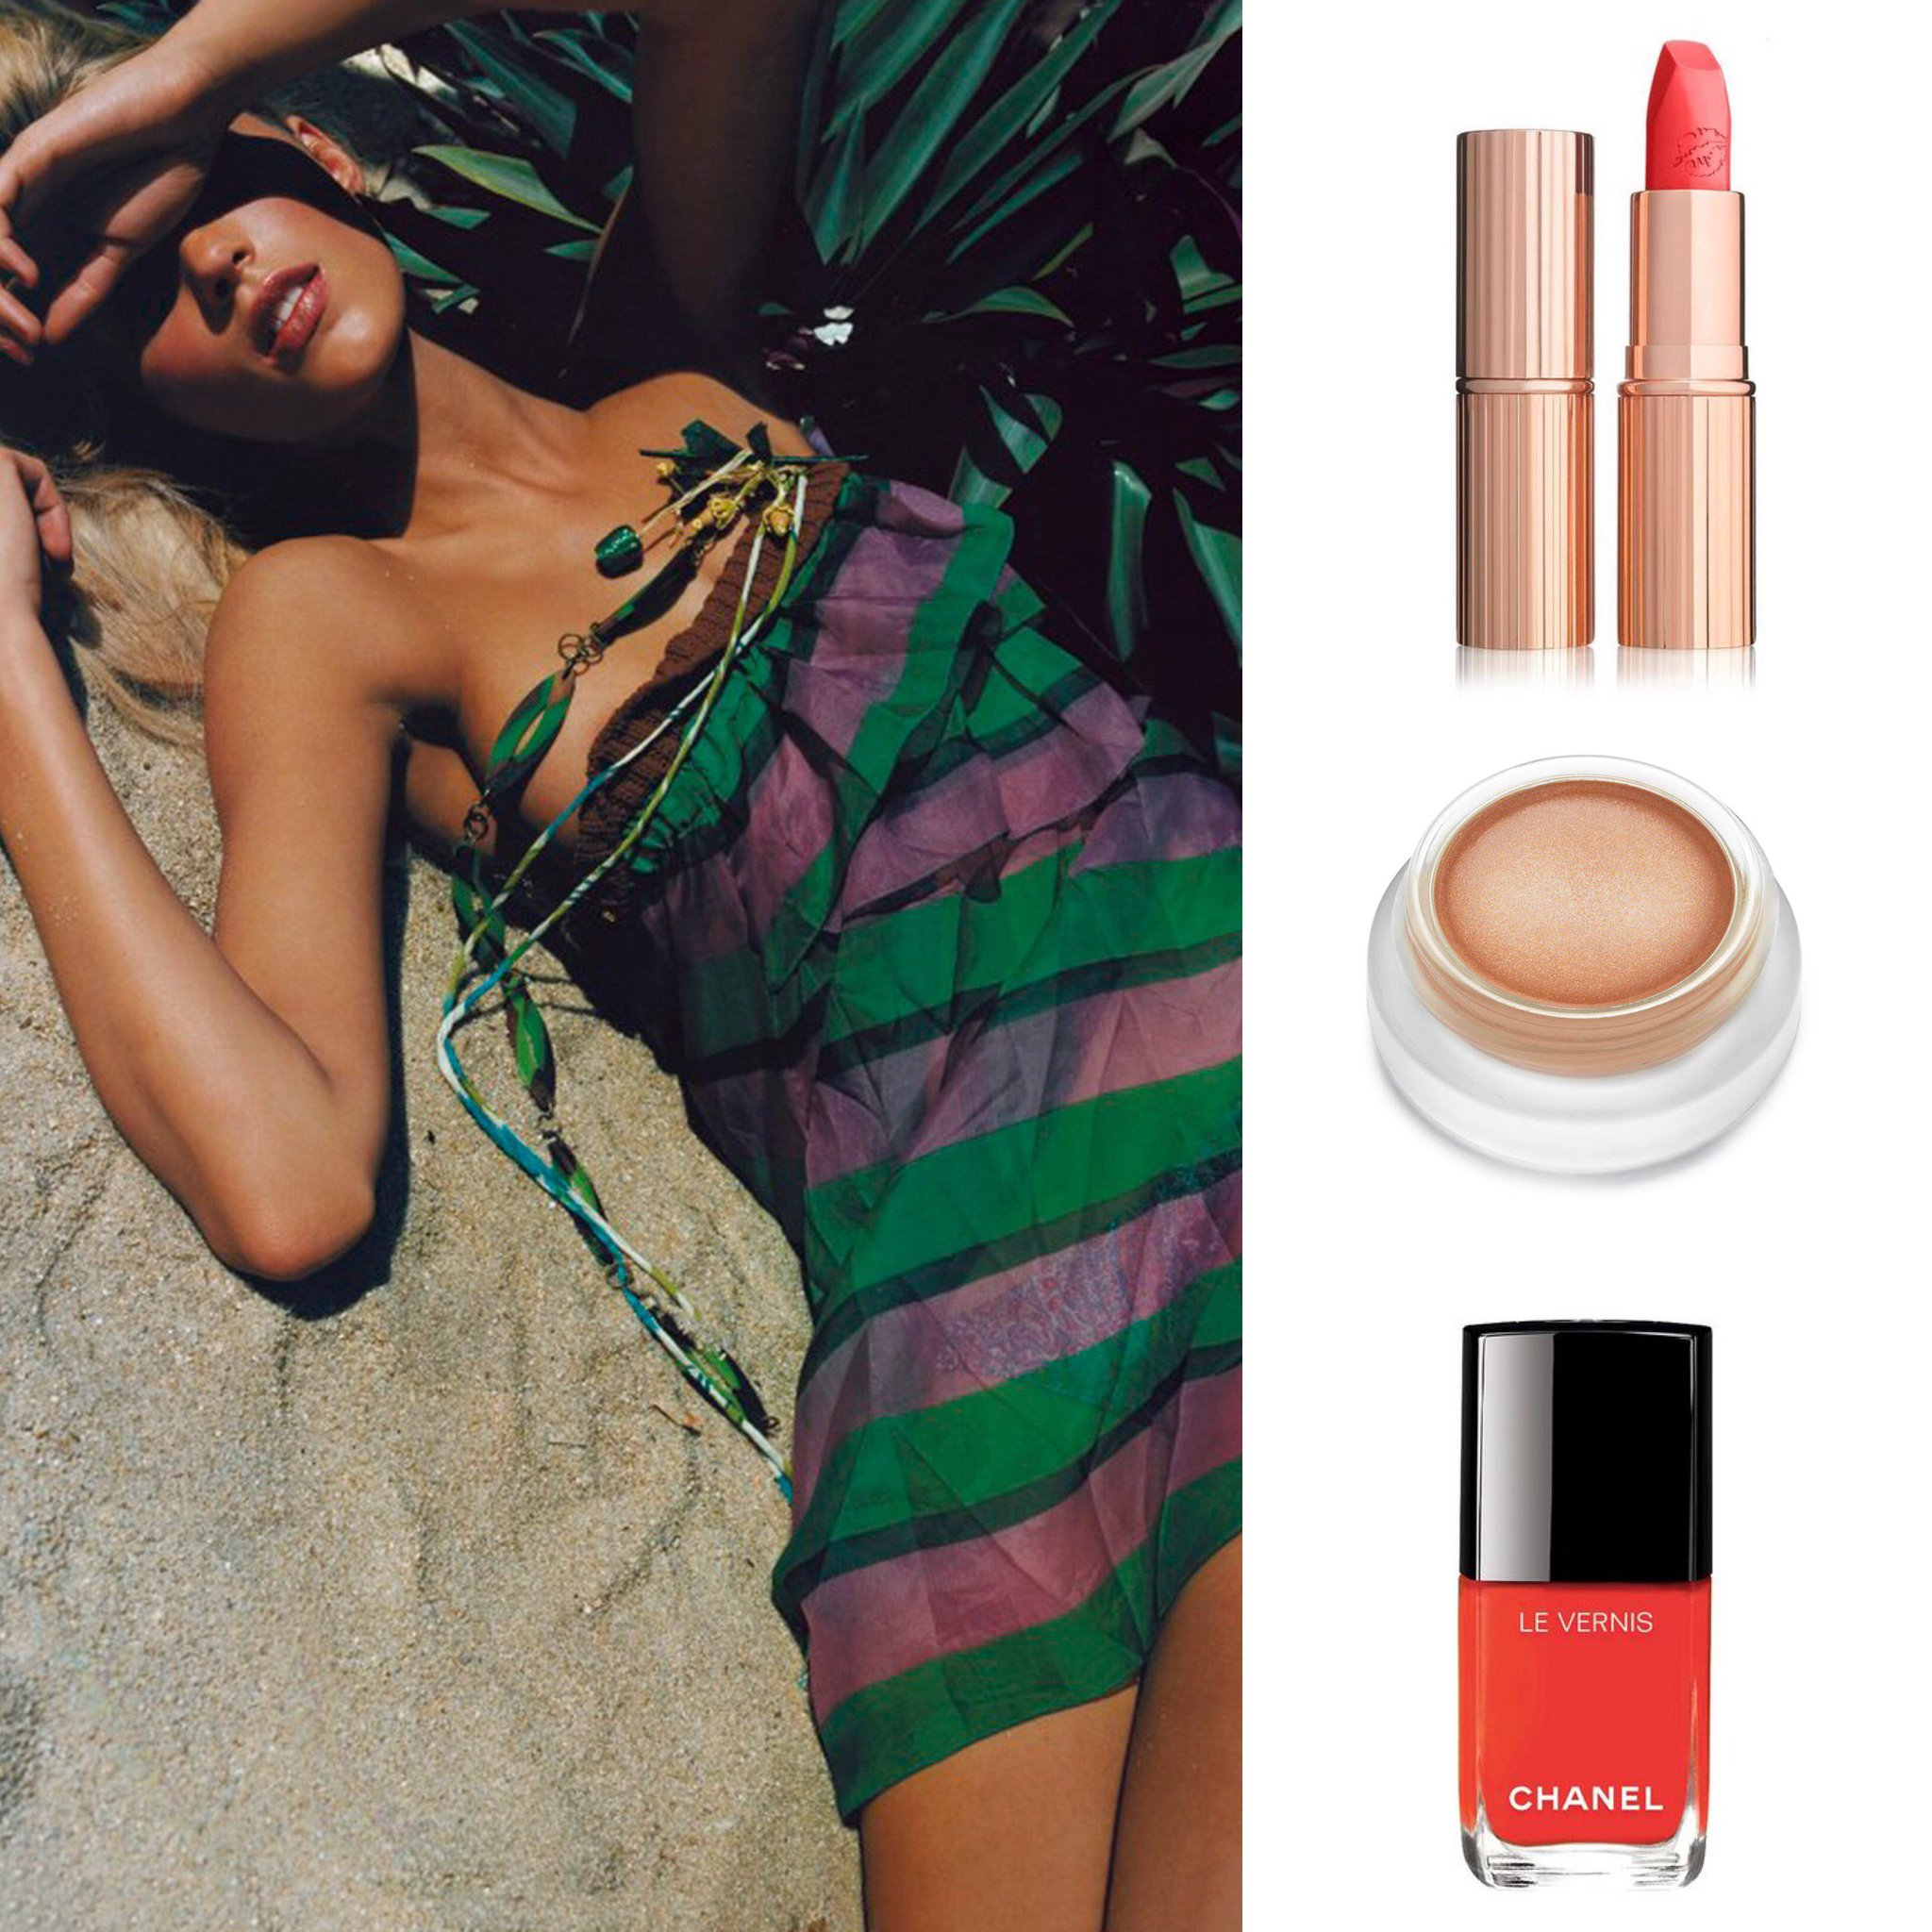 Eight beauty products to complement a summer tan: https://t.co/TVjjg4aJo0 https://t.co/aC1gcdRTPG